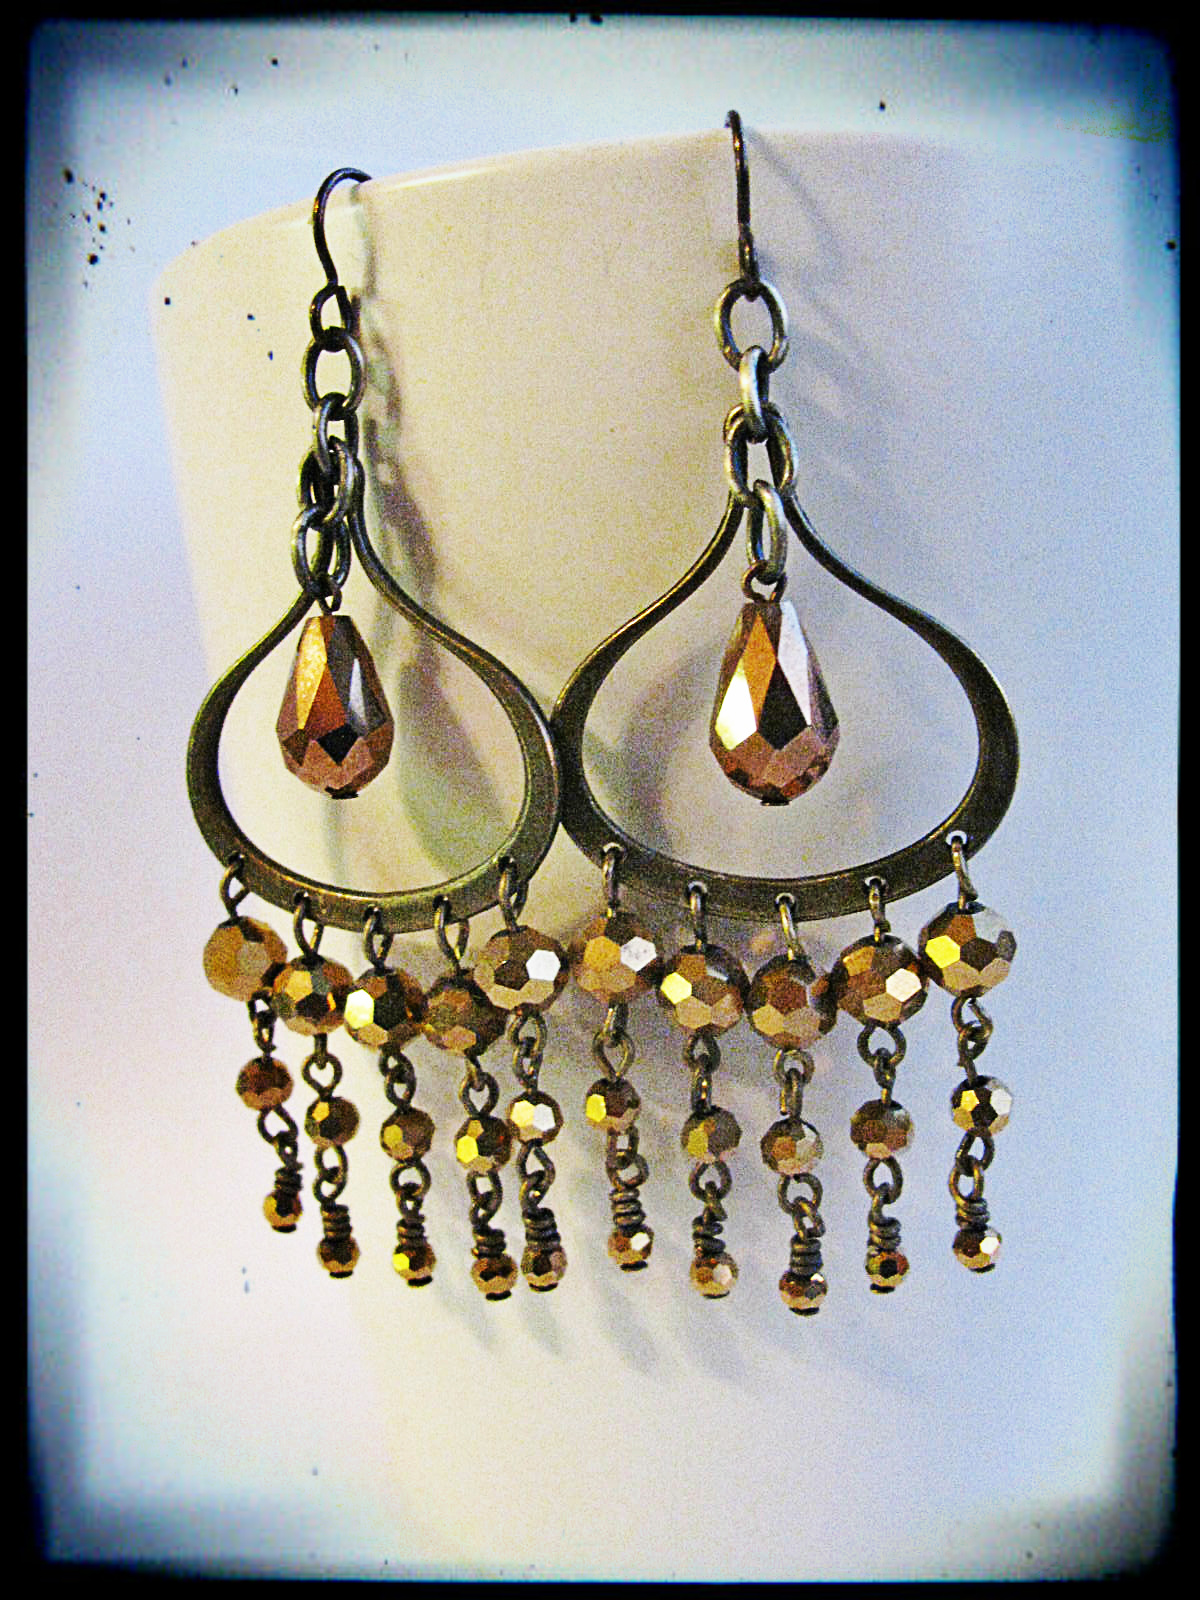 Close-up of the earrings. Onion-shaped chandelier findings with graduated gold sparkly glass.